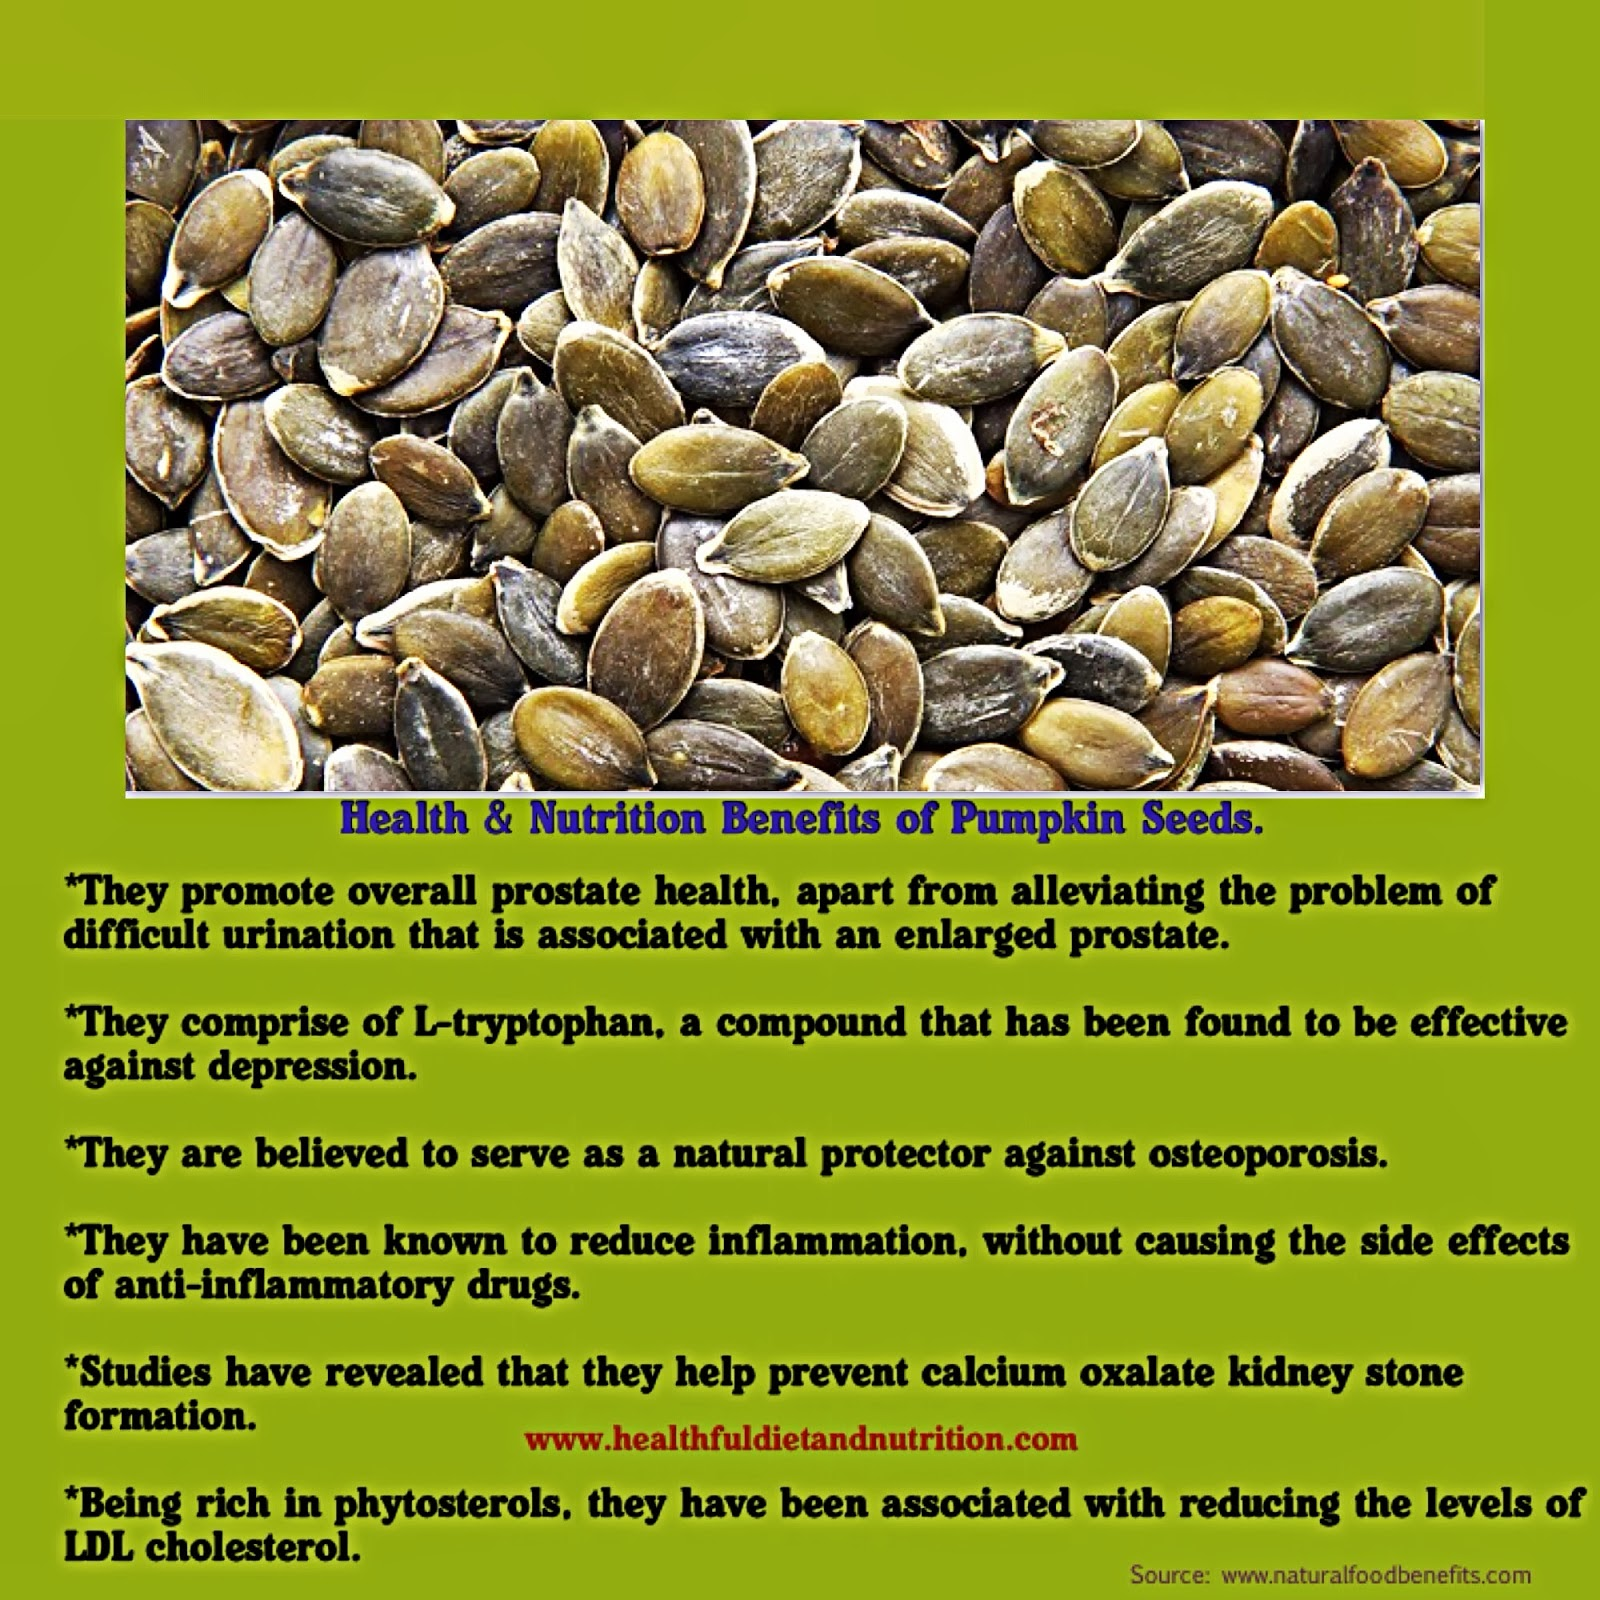 Health Benefits of Pumpkin Seed